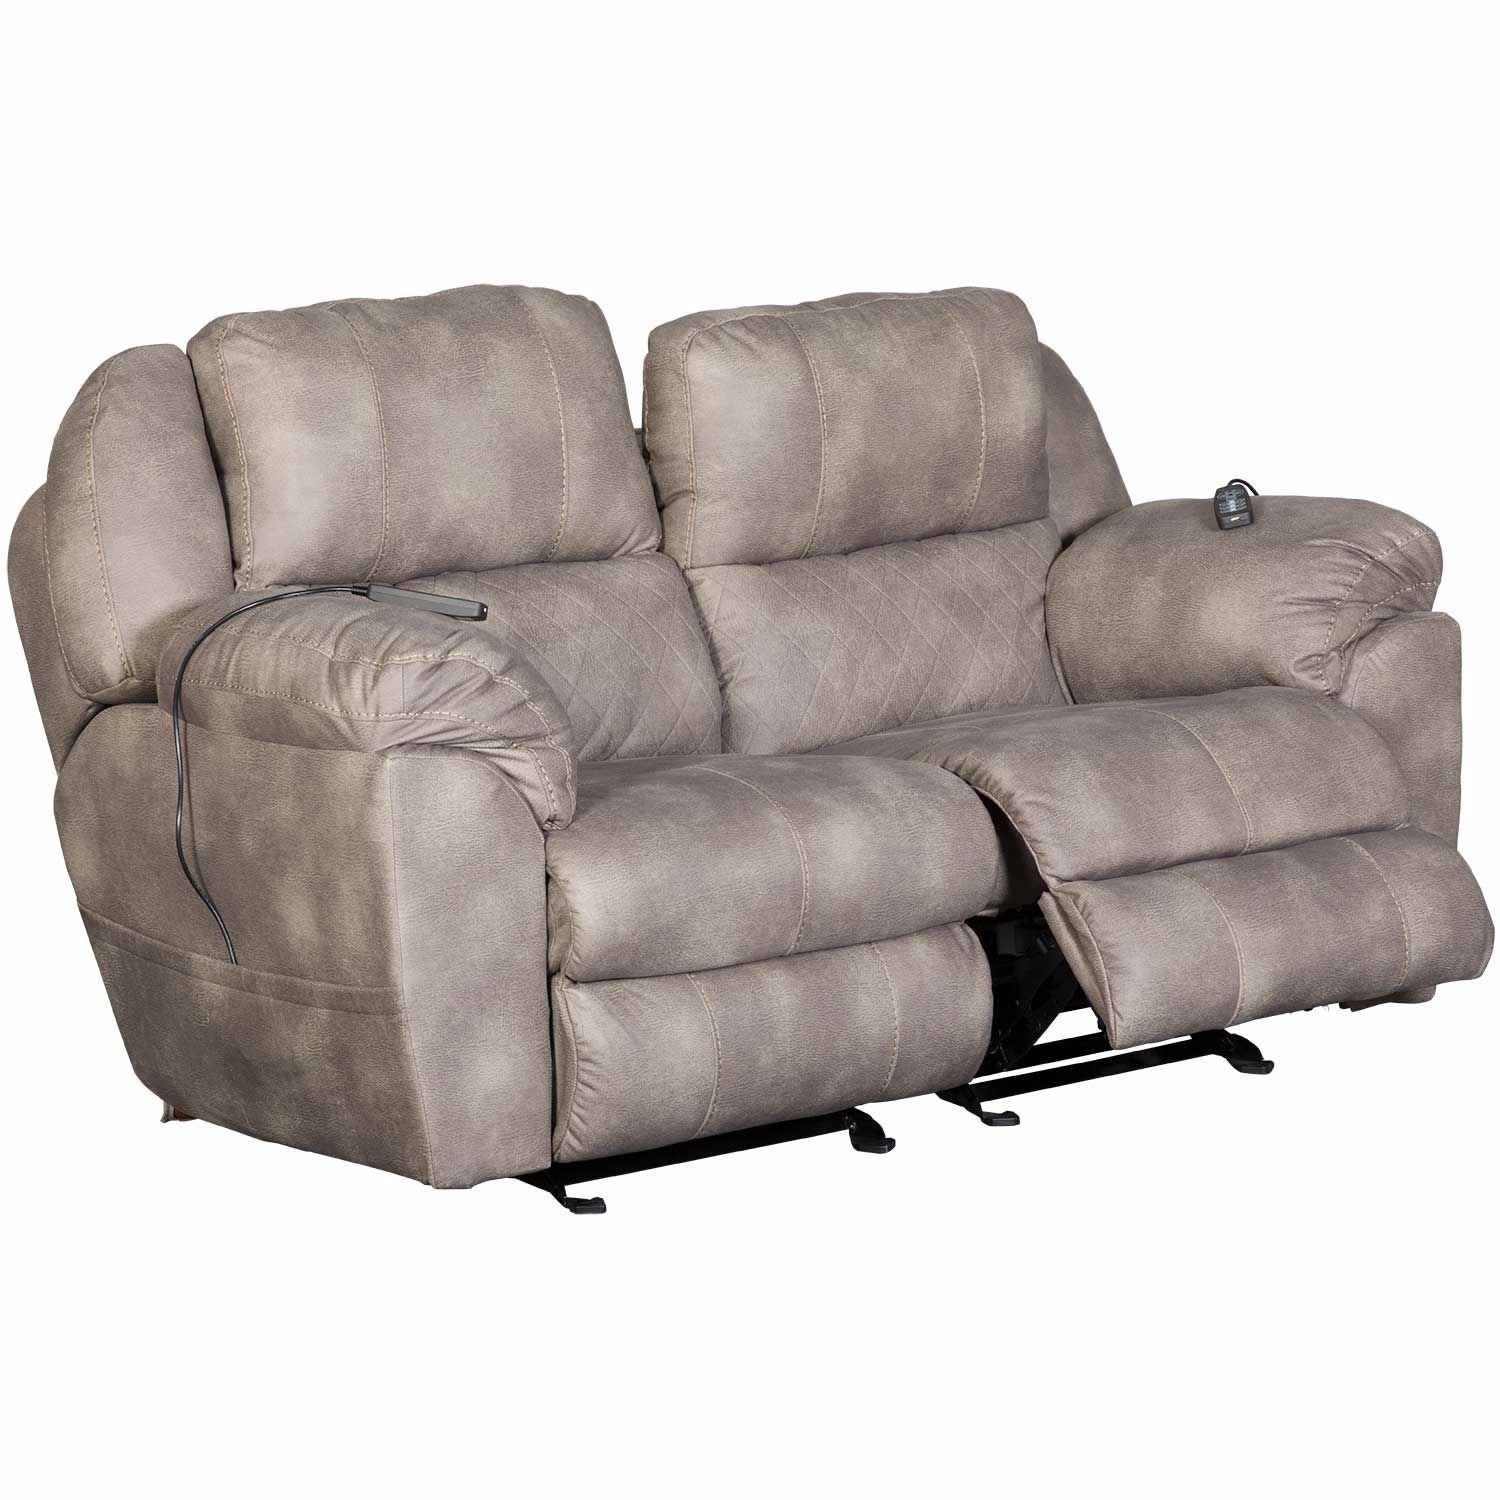 Picture of Power Recline Loveseat with Power Headrest, Lumbar